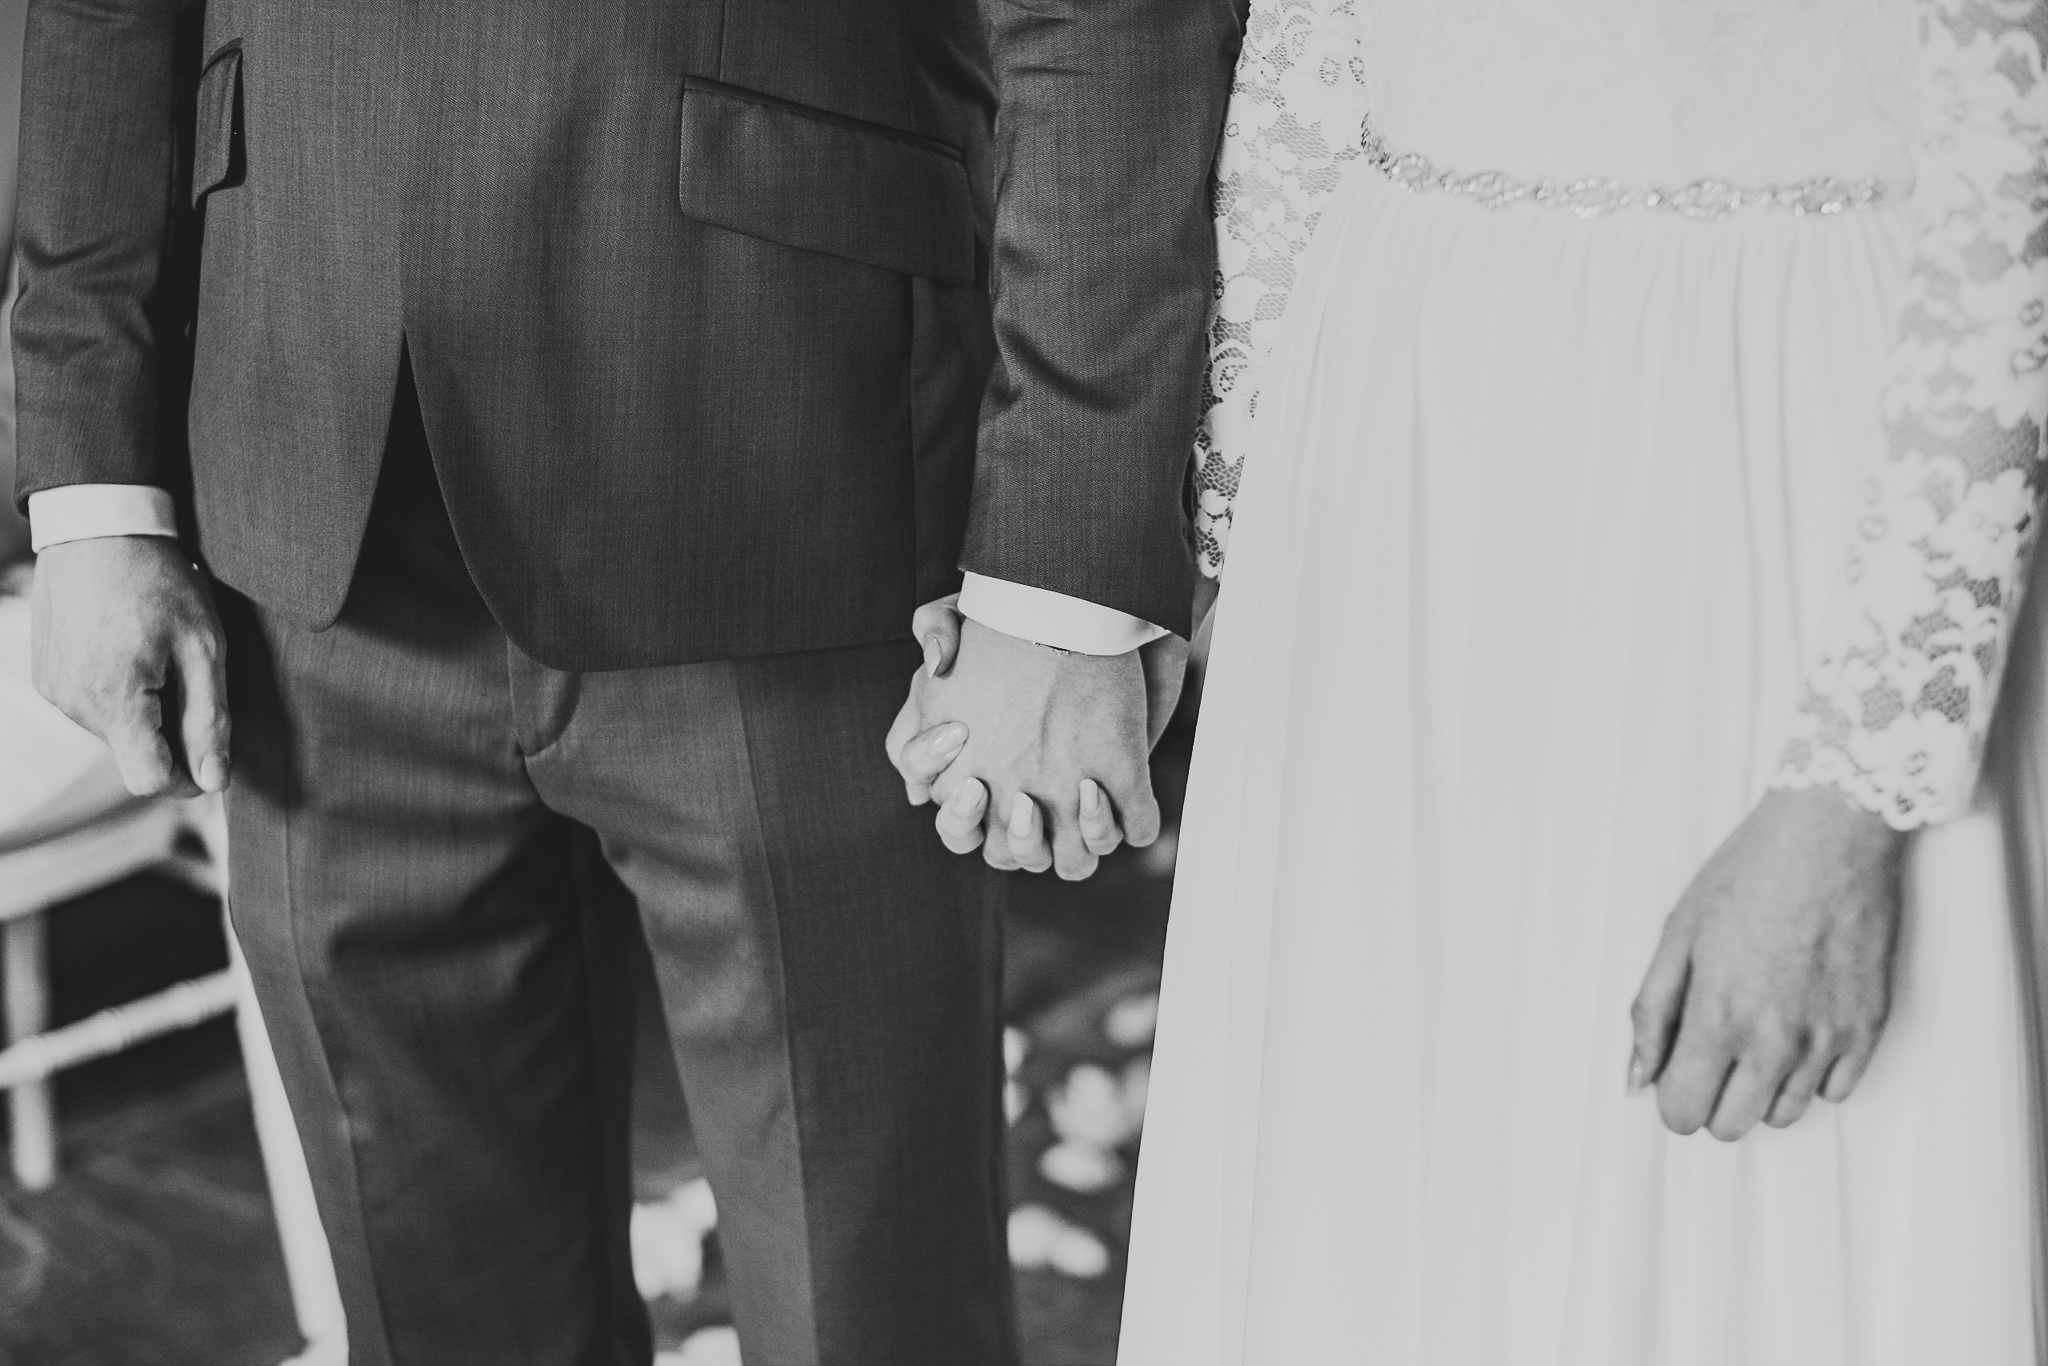 A black and white photo of the bride and groom holding hands during their wedding ceremony